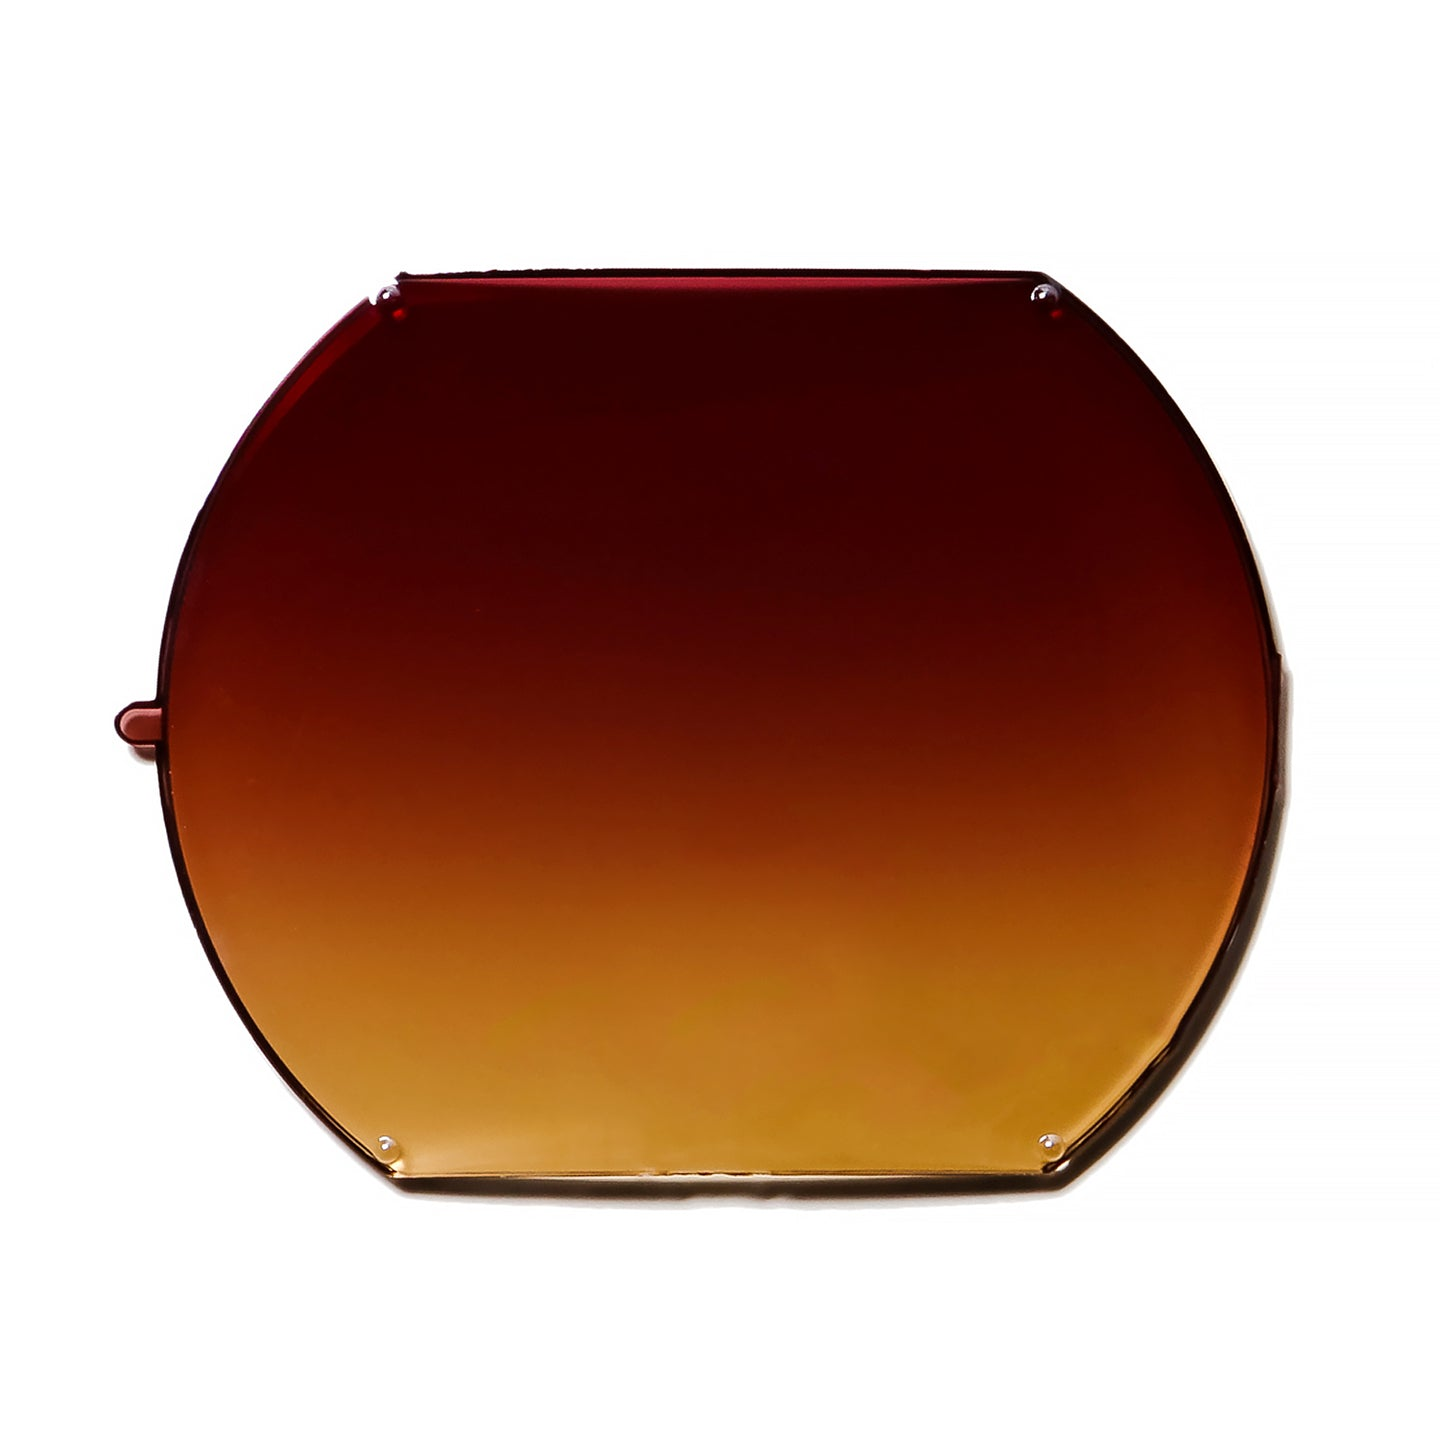 084 - White / Red Wine Gradient Flat Lens